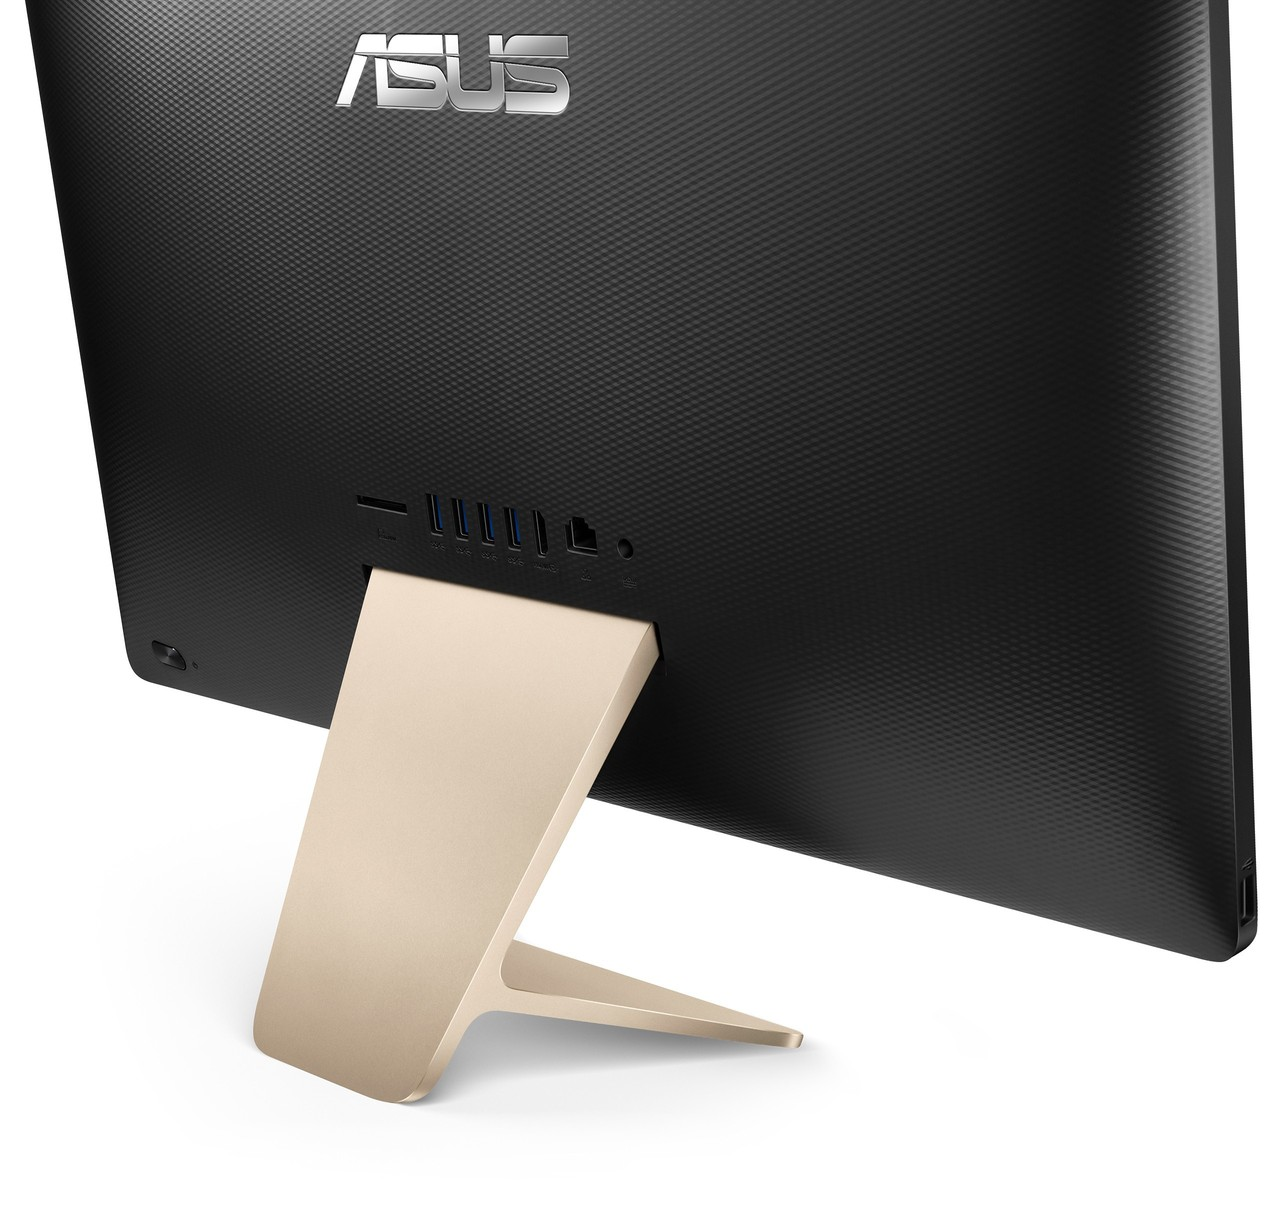 https://dlcdnimgs.asus.com/websites/global/products/wGbJc9nHuVmcXmd2/v2/features/images/large/1x/connectivity.jpg